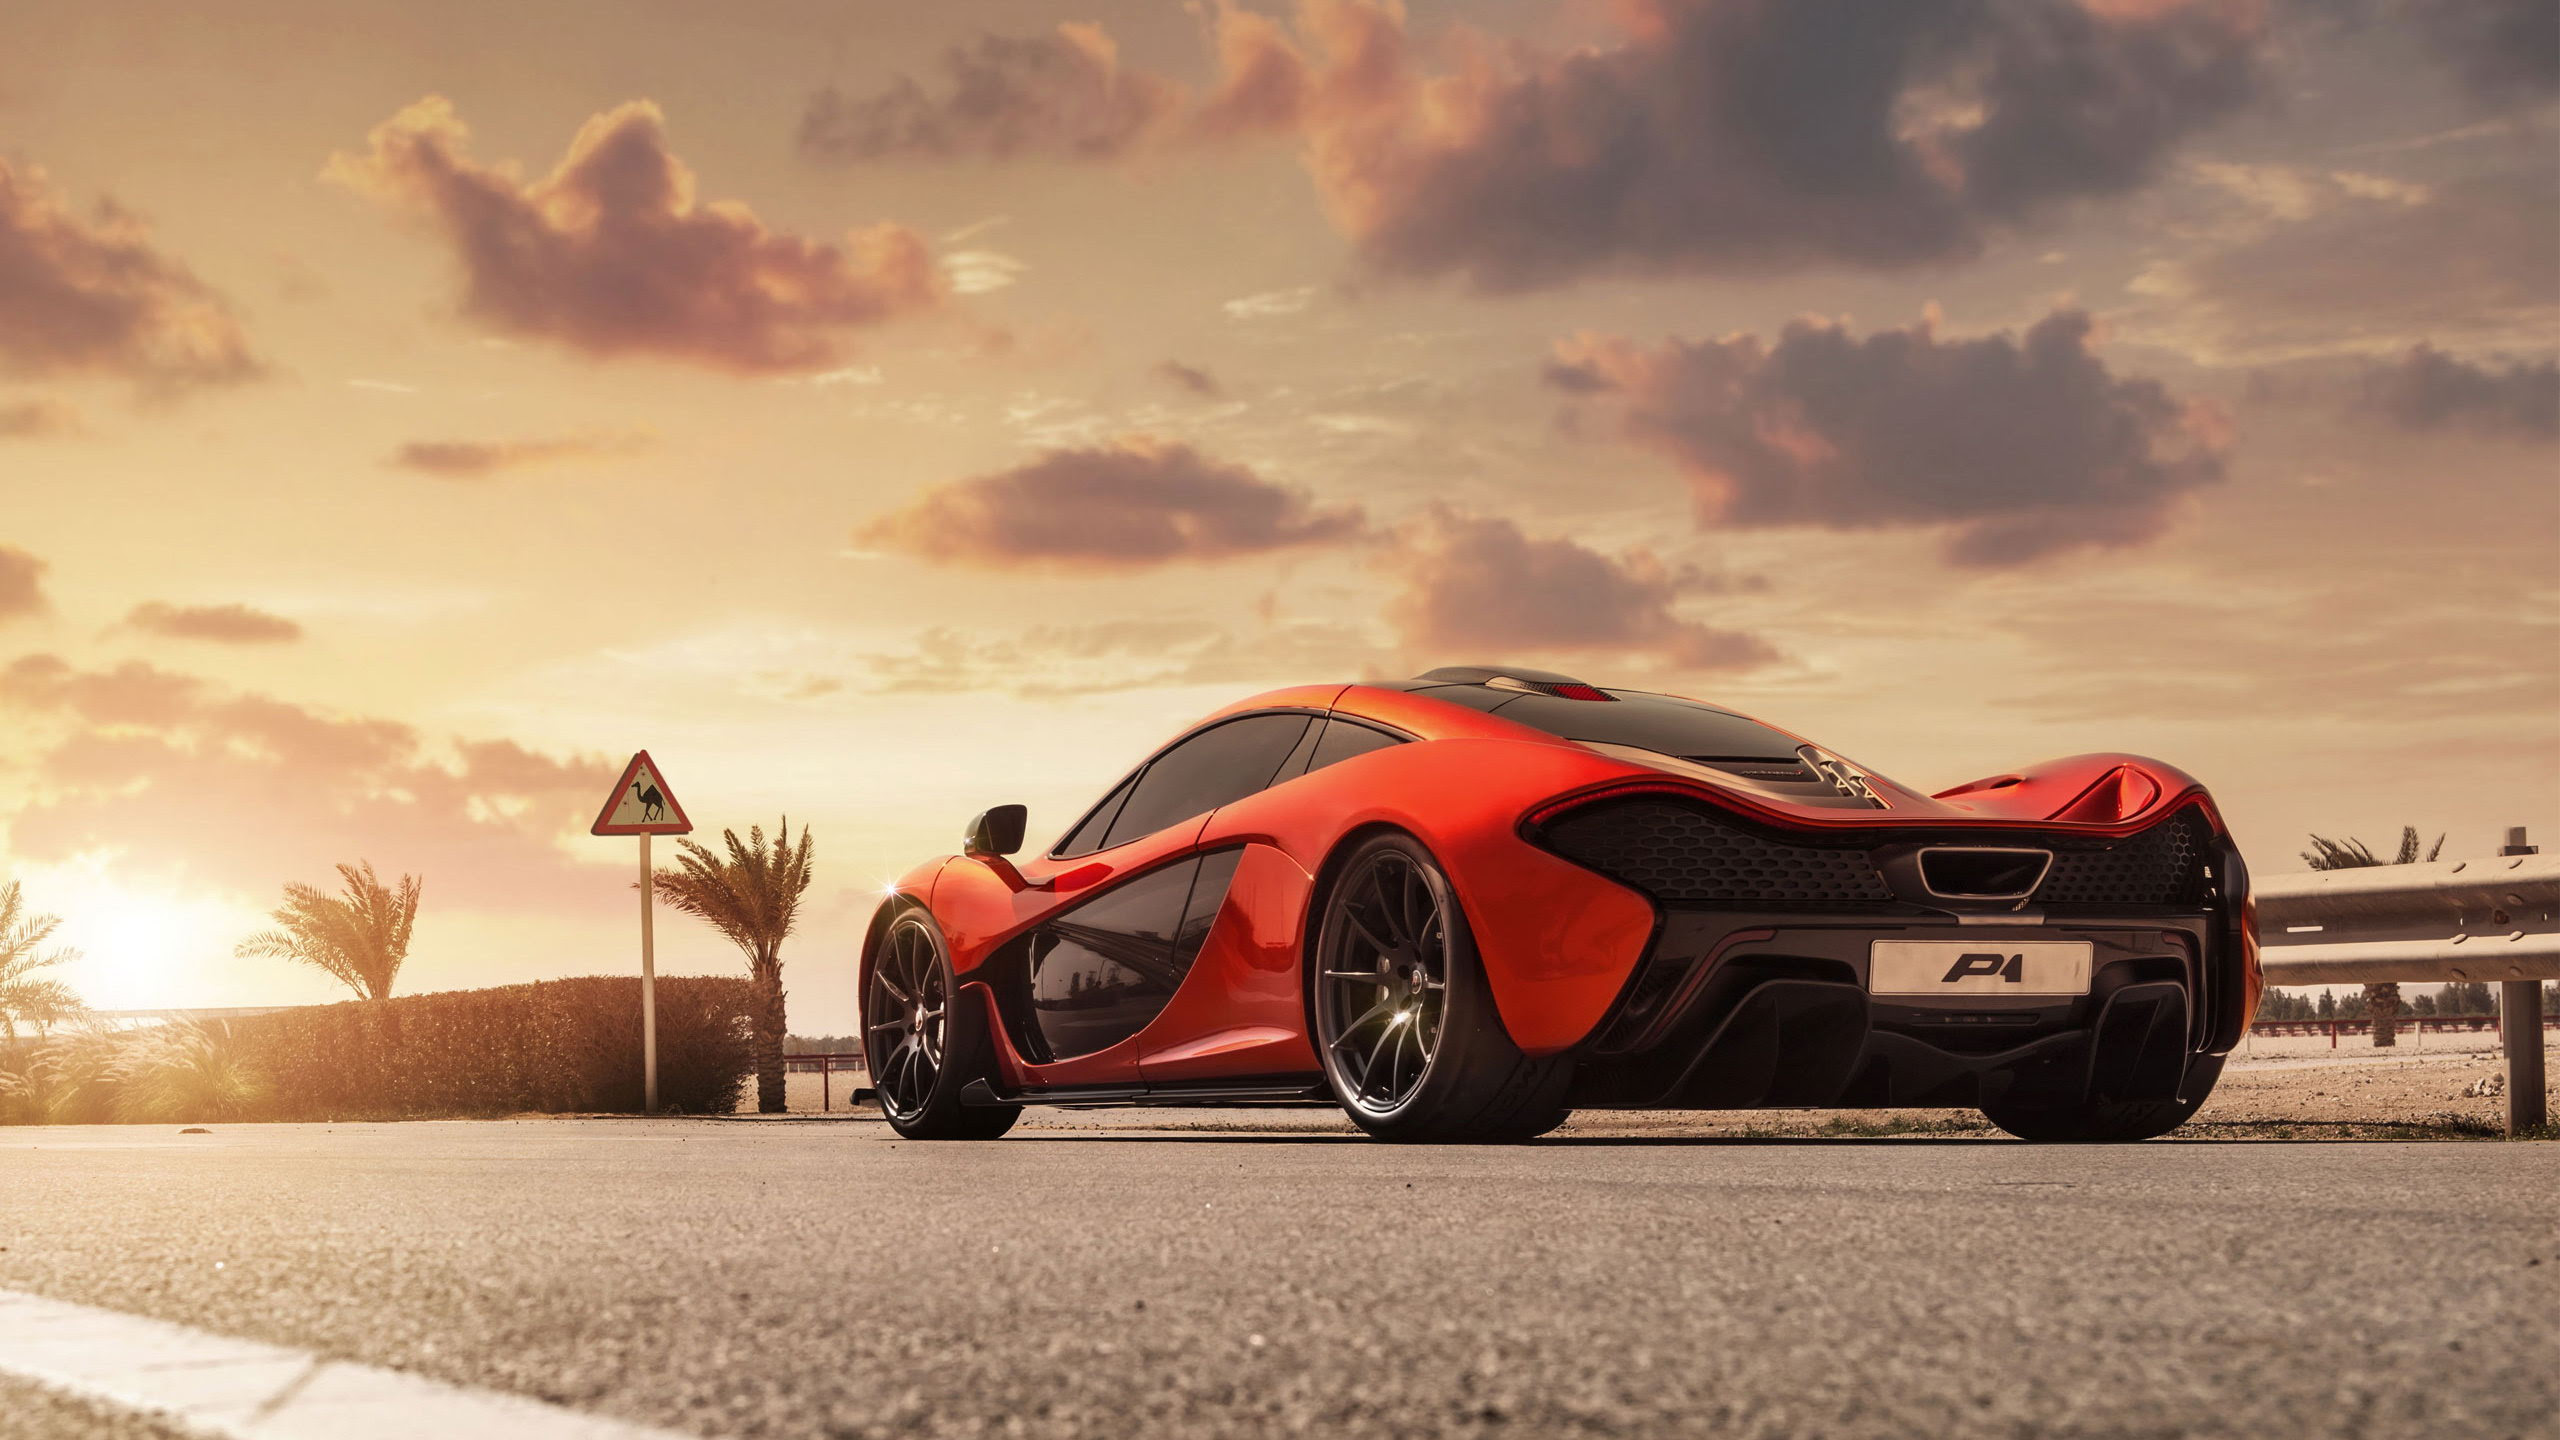 Sport Wallpapers For Iphone 6: Iphone Wallpaper: Sports Cars Wallpapers